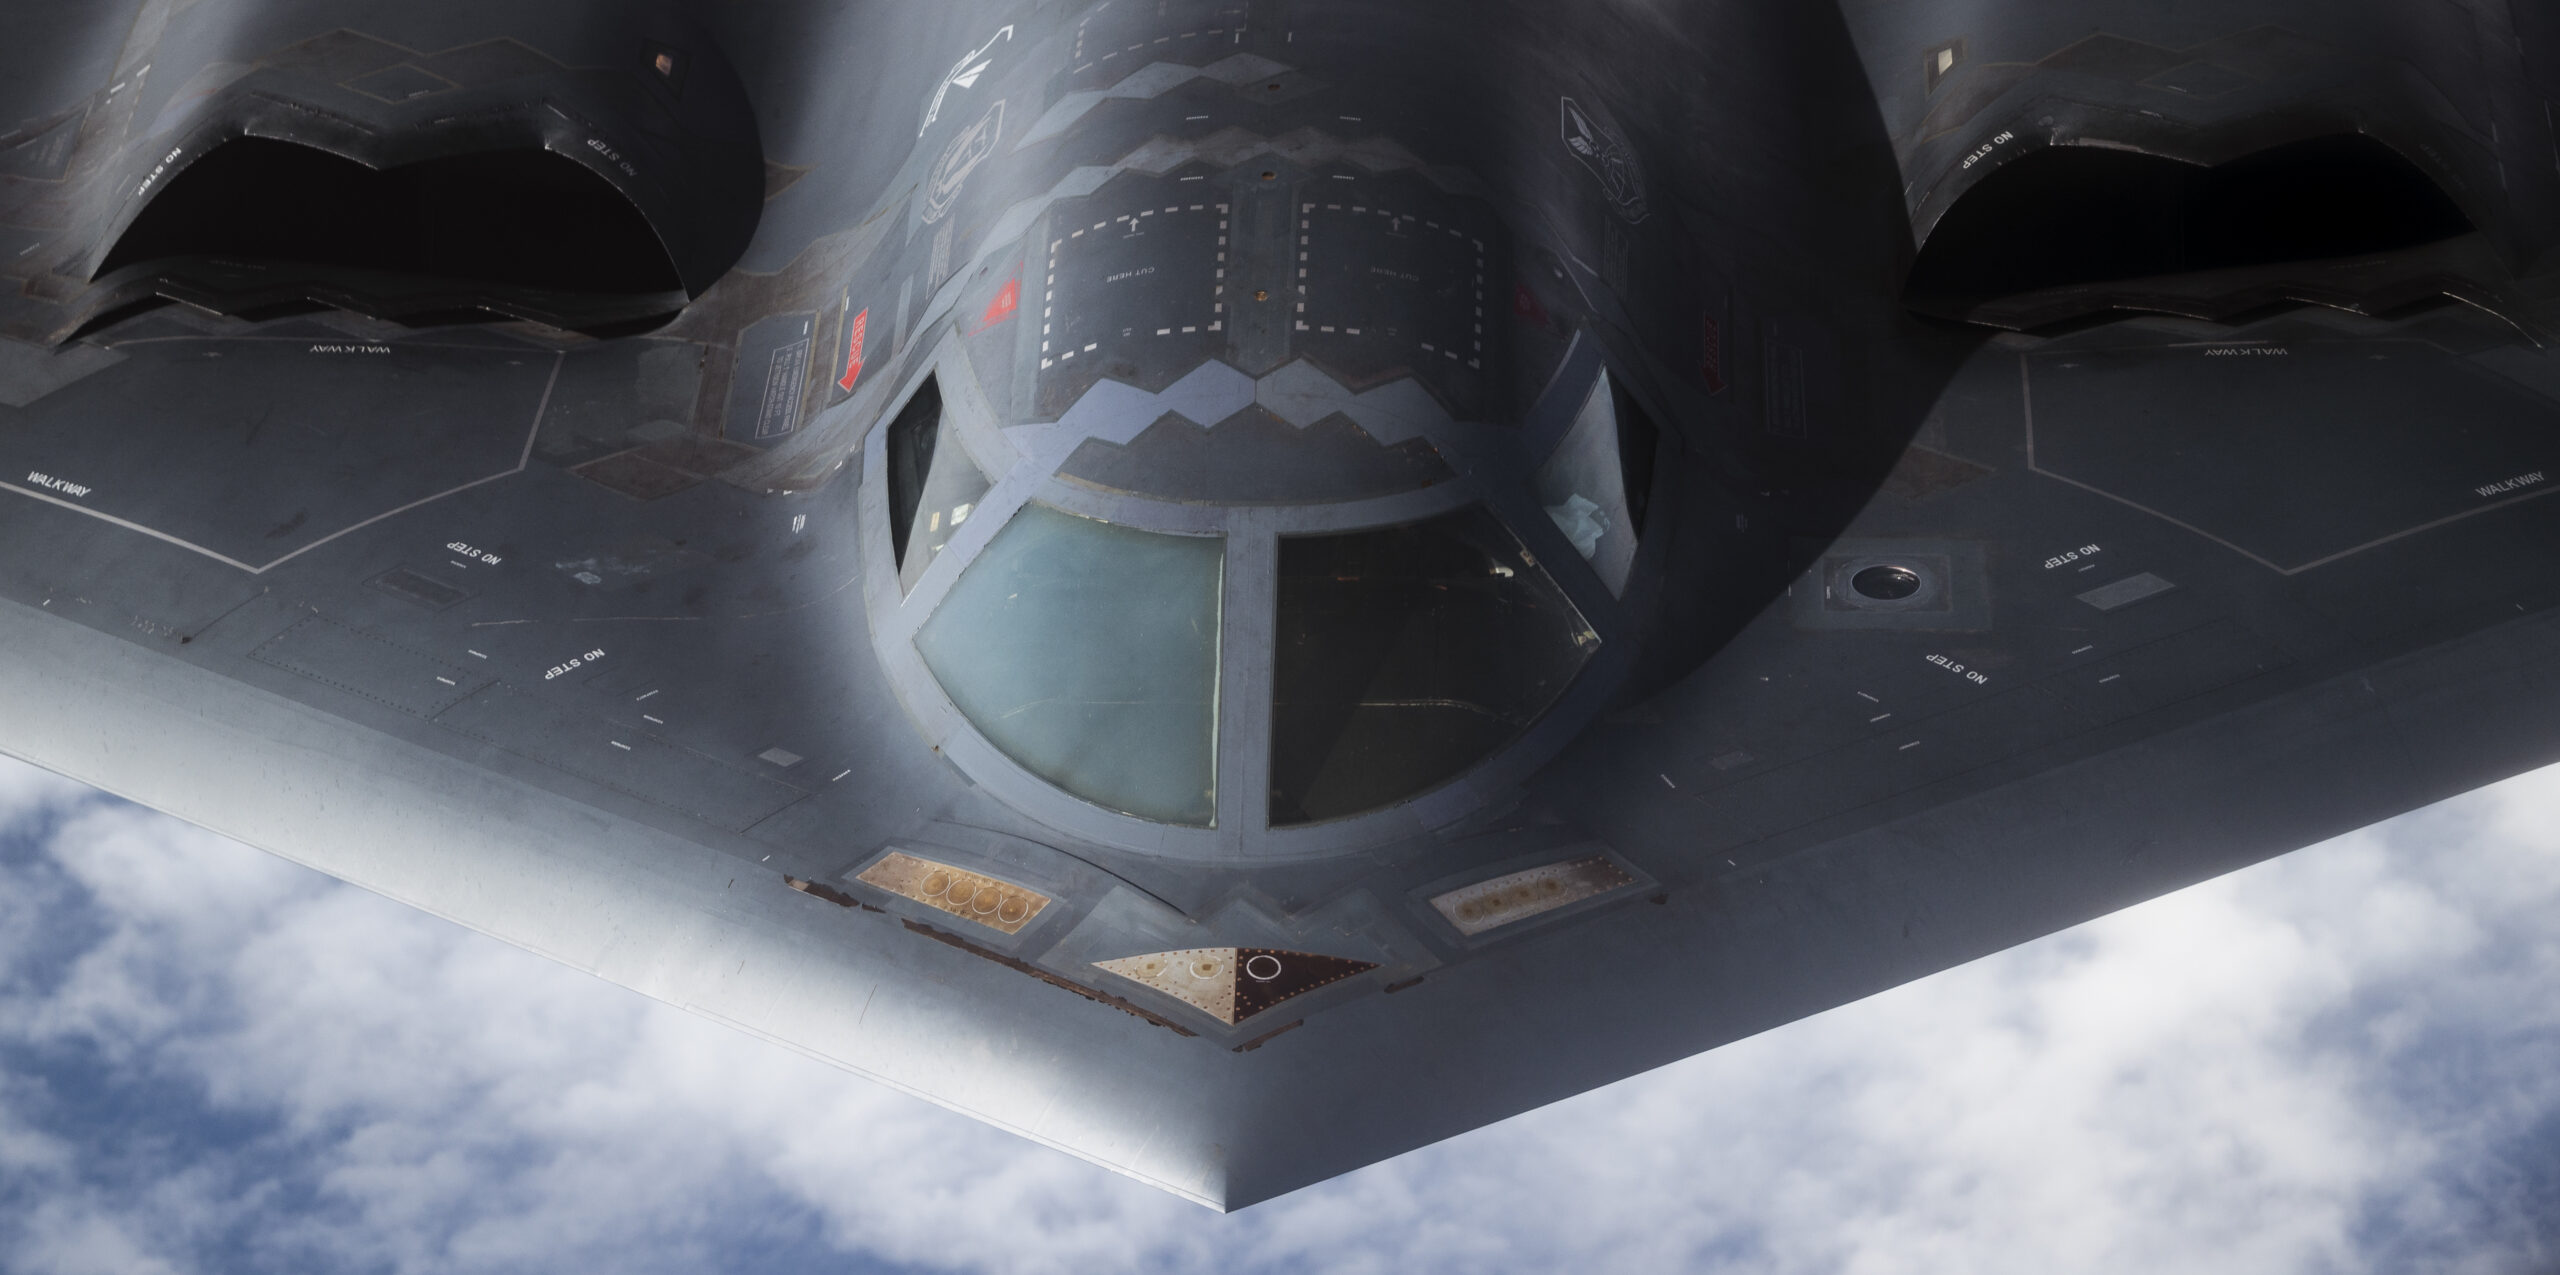 - Let's Have Another Look At The B-2's Air Data Ports And Astroinertial Navigation System